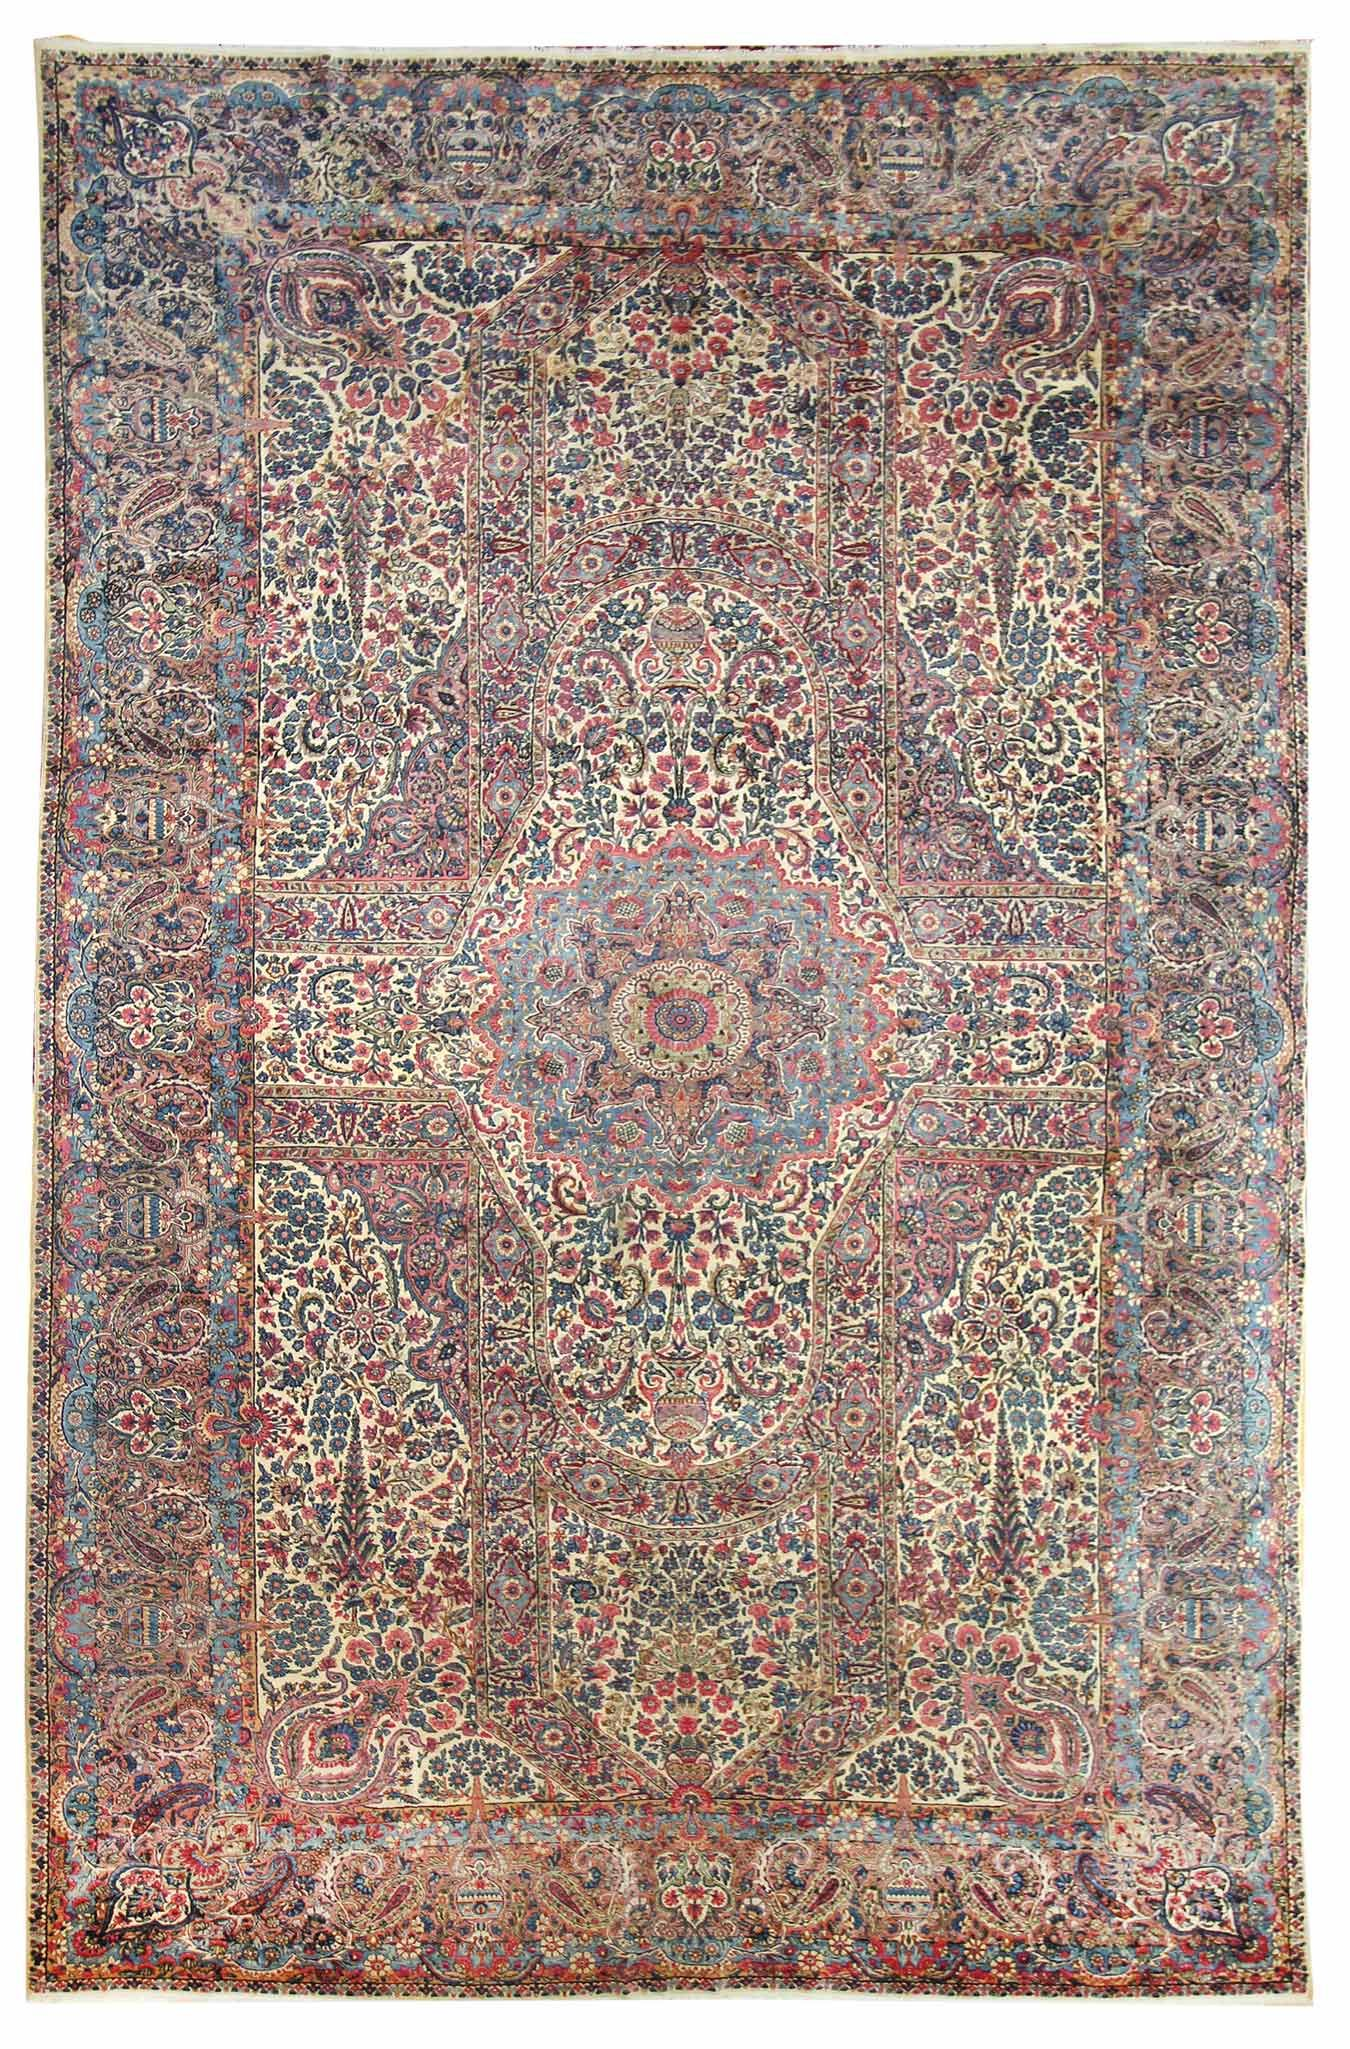 Oversize Antique Rugs Gallery Oversize Lavar Kerman Rug Hand Knotted In Persia Size 11 Feet 9 Inch Es X 20 Feet 4 Inc Kerman Rugs Antique Persian Rug Rugs